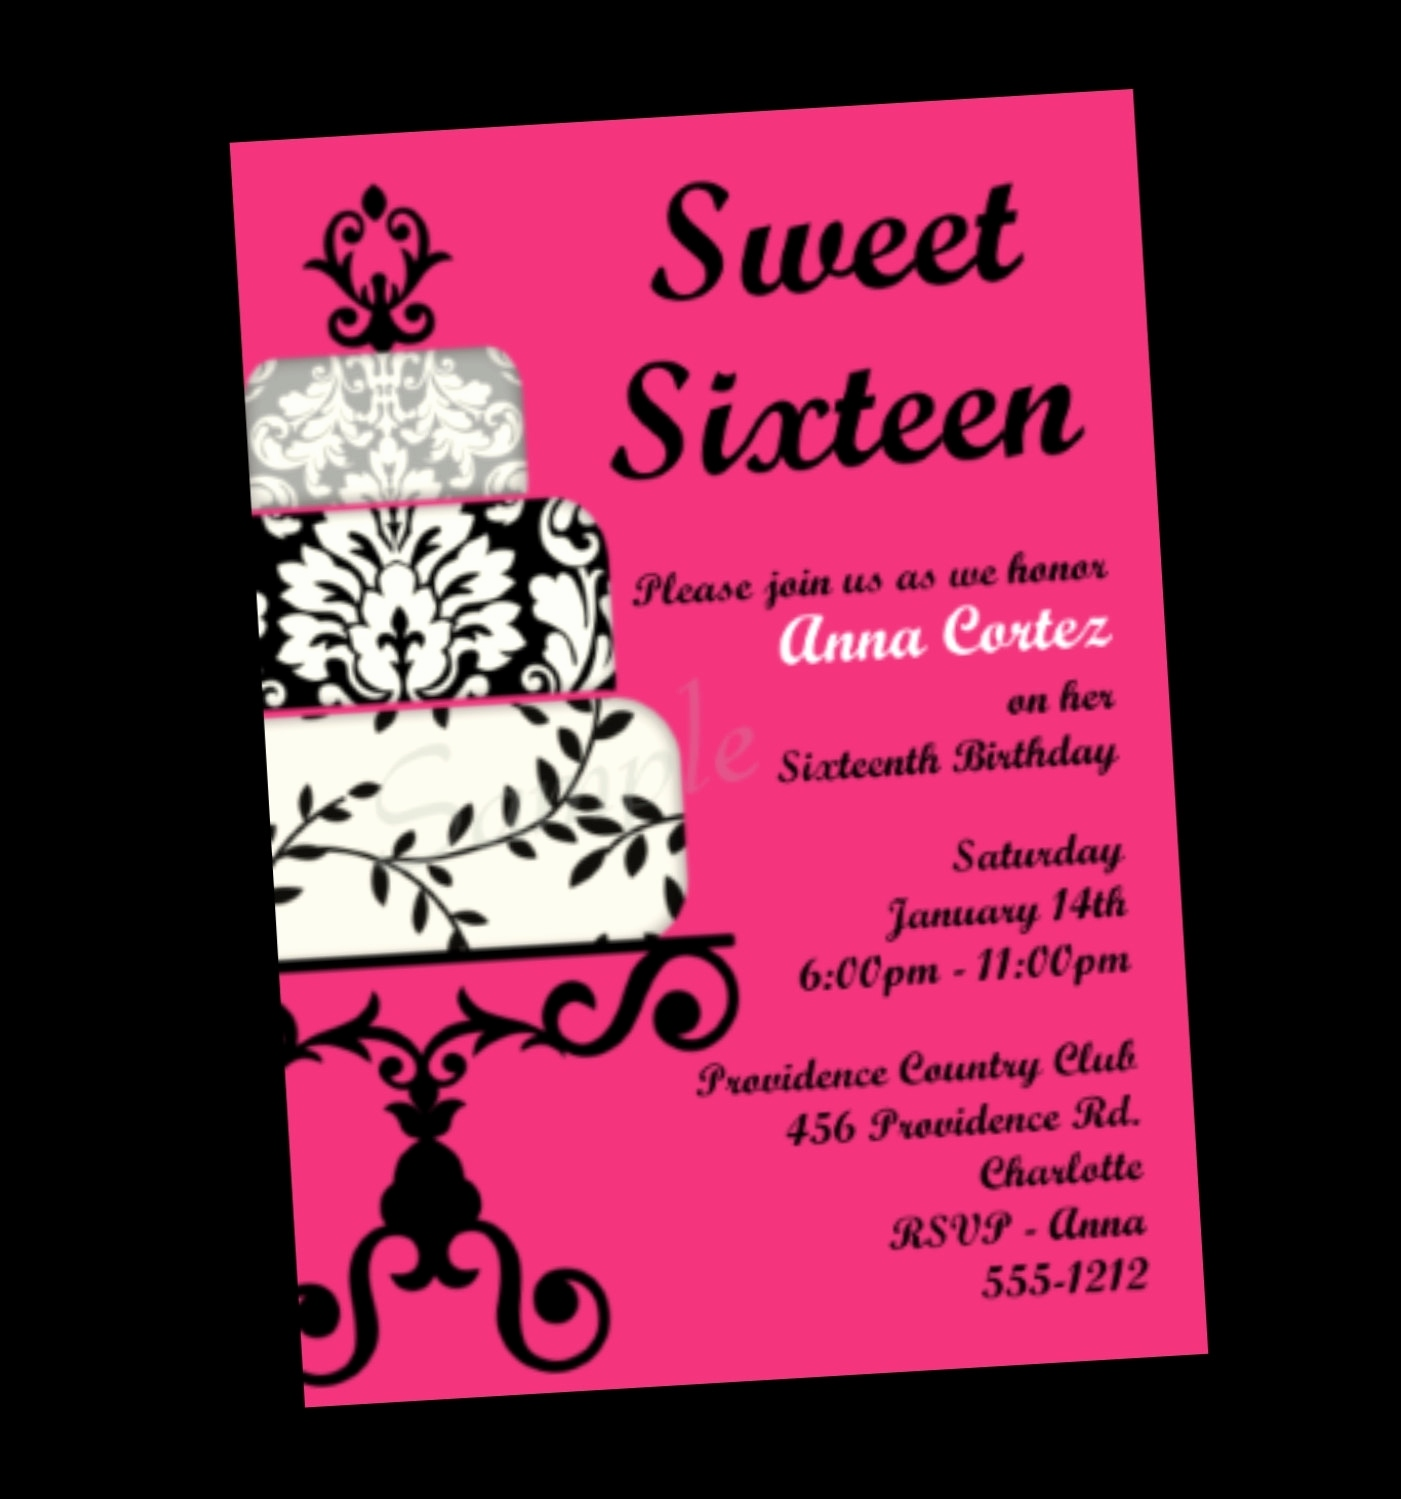 sweet sixteen birthday invitation cards ; invitation-card-for-surprise-birthday-party-lovely-sweet-16-party-invitations-of-invitation-card-for-surprise-birthday-party